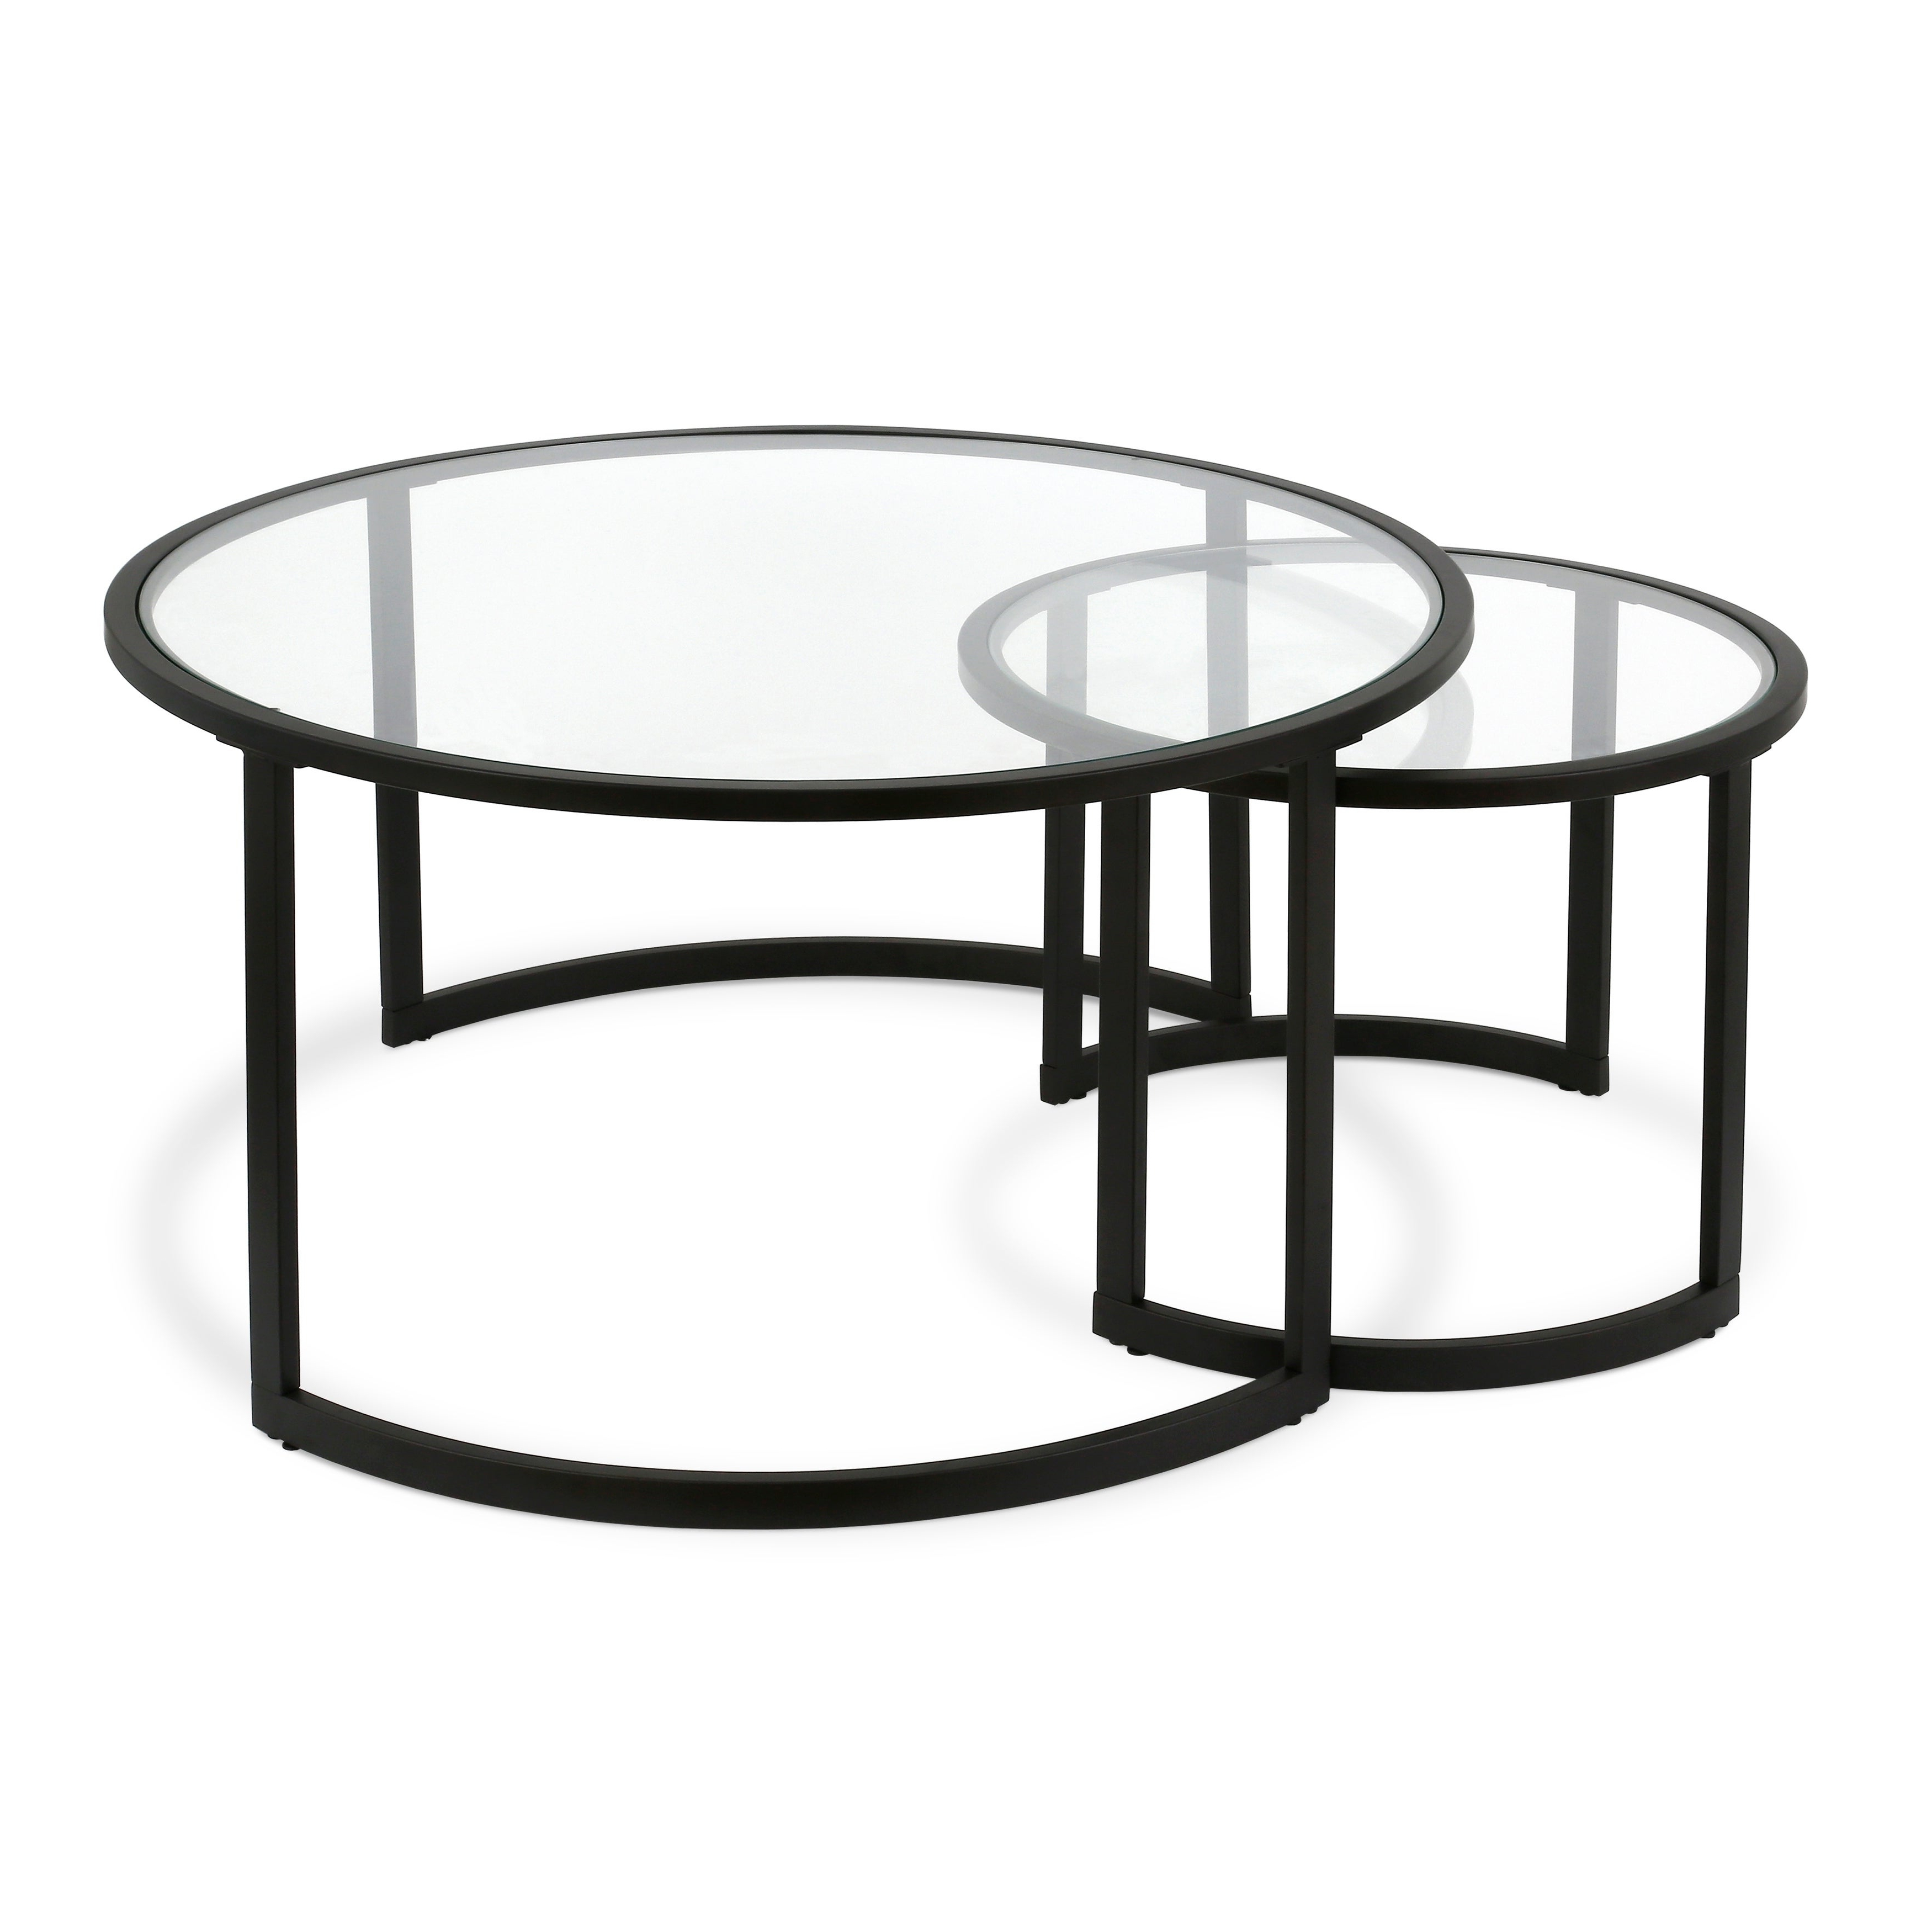 Mitera Round Metal/glass Nesting Coffee Tables Set Of 2 (Optional Finishes) Within Widely Used Mitera Round Metal Glass Nesting Coffee Tables (View 12 of 20)